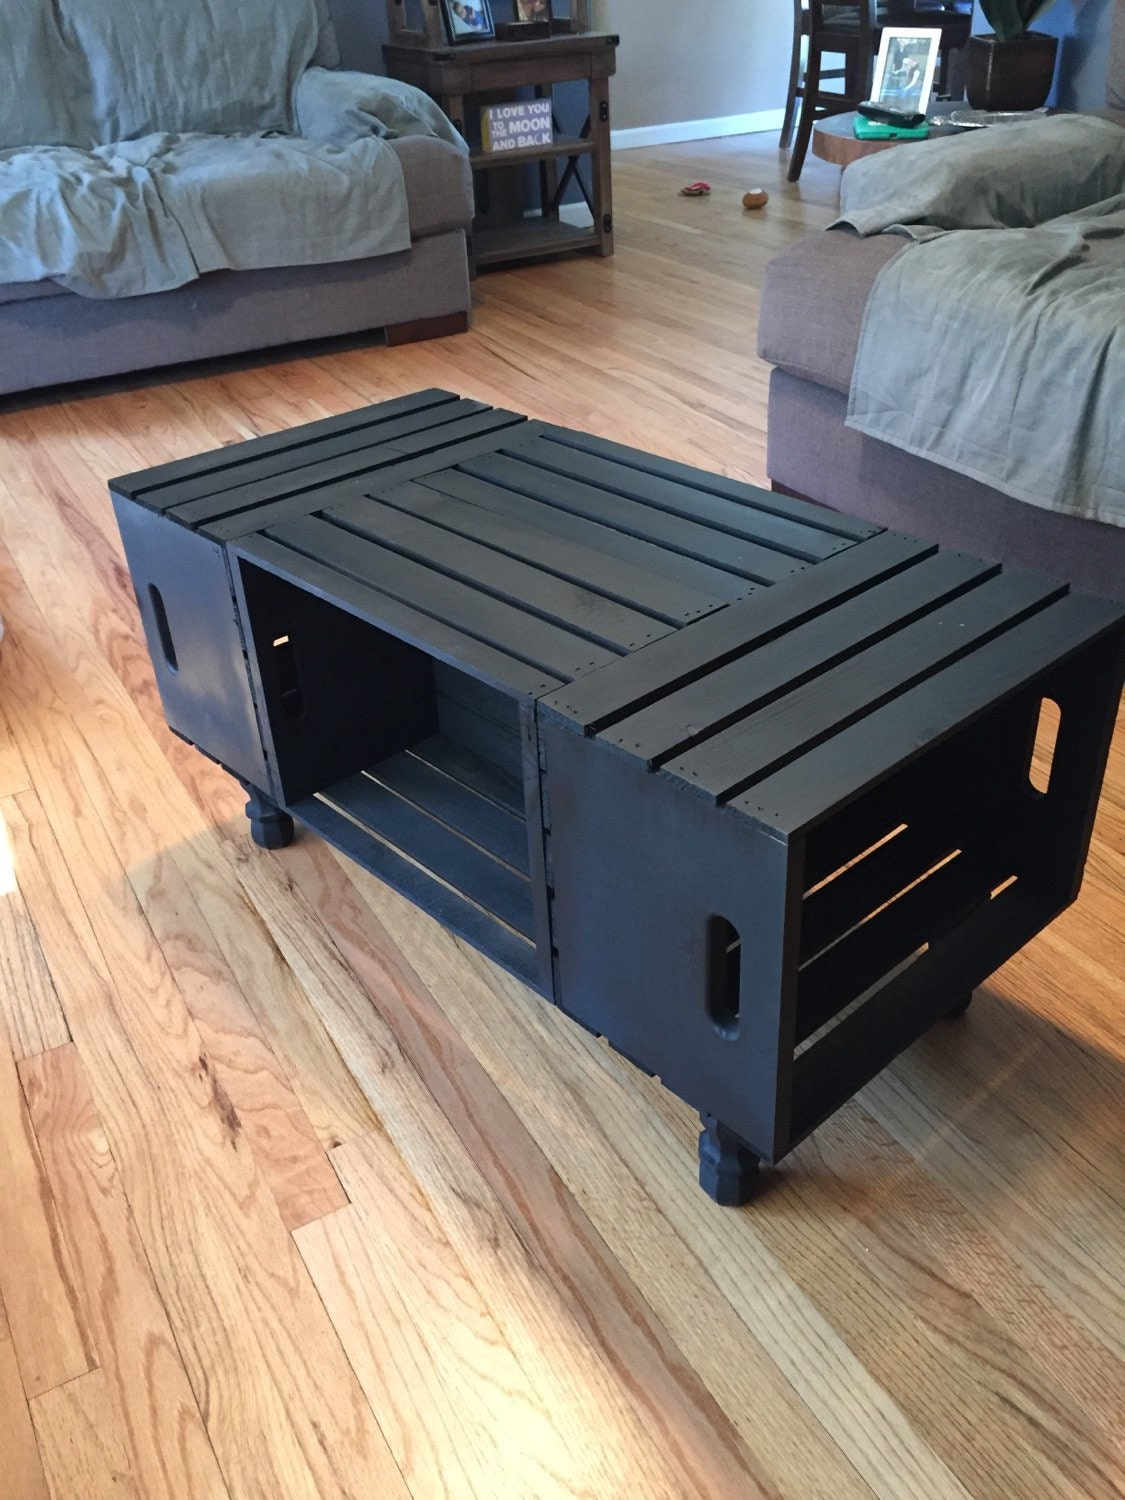 11 DIY Wooden Crate Coffee Table Ideas |Wooden Crate Coffee Table